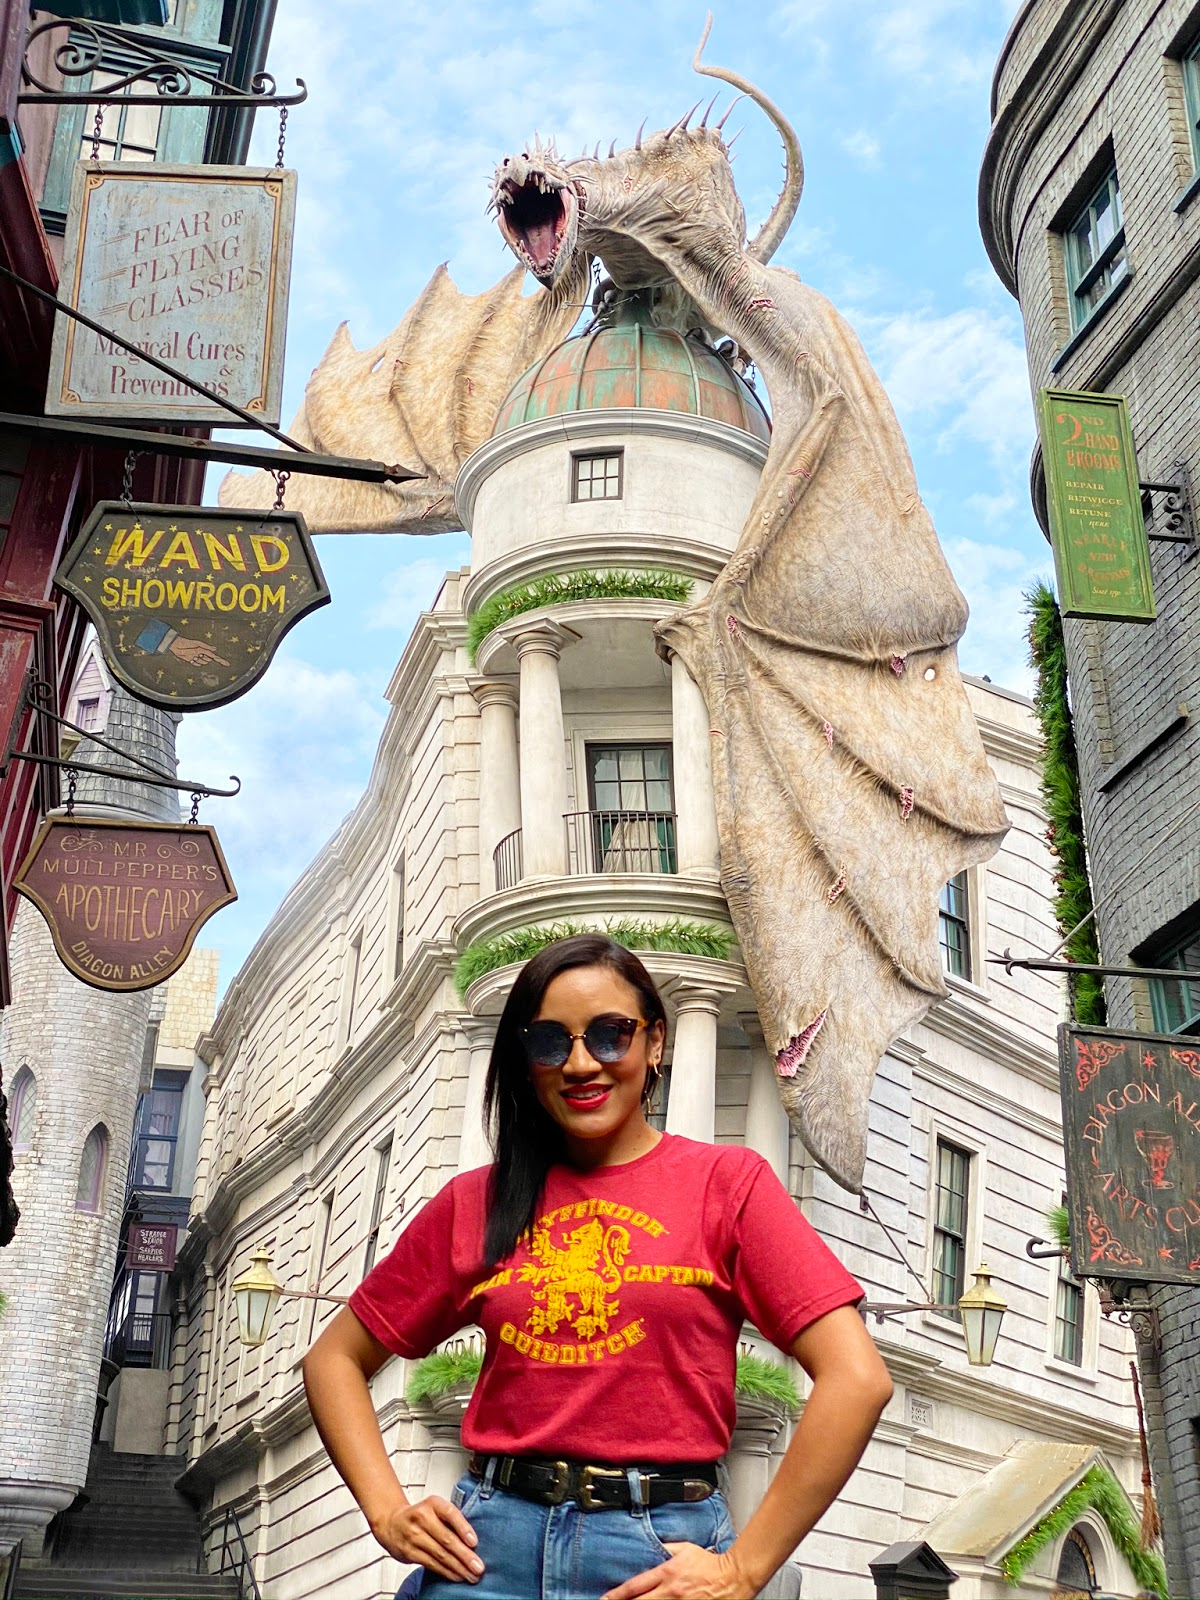 The Wizarding World of Harry Potter: 10 must see